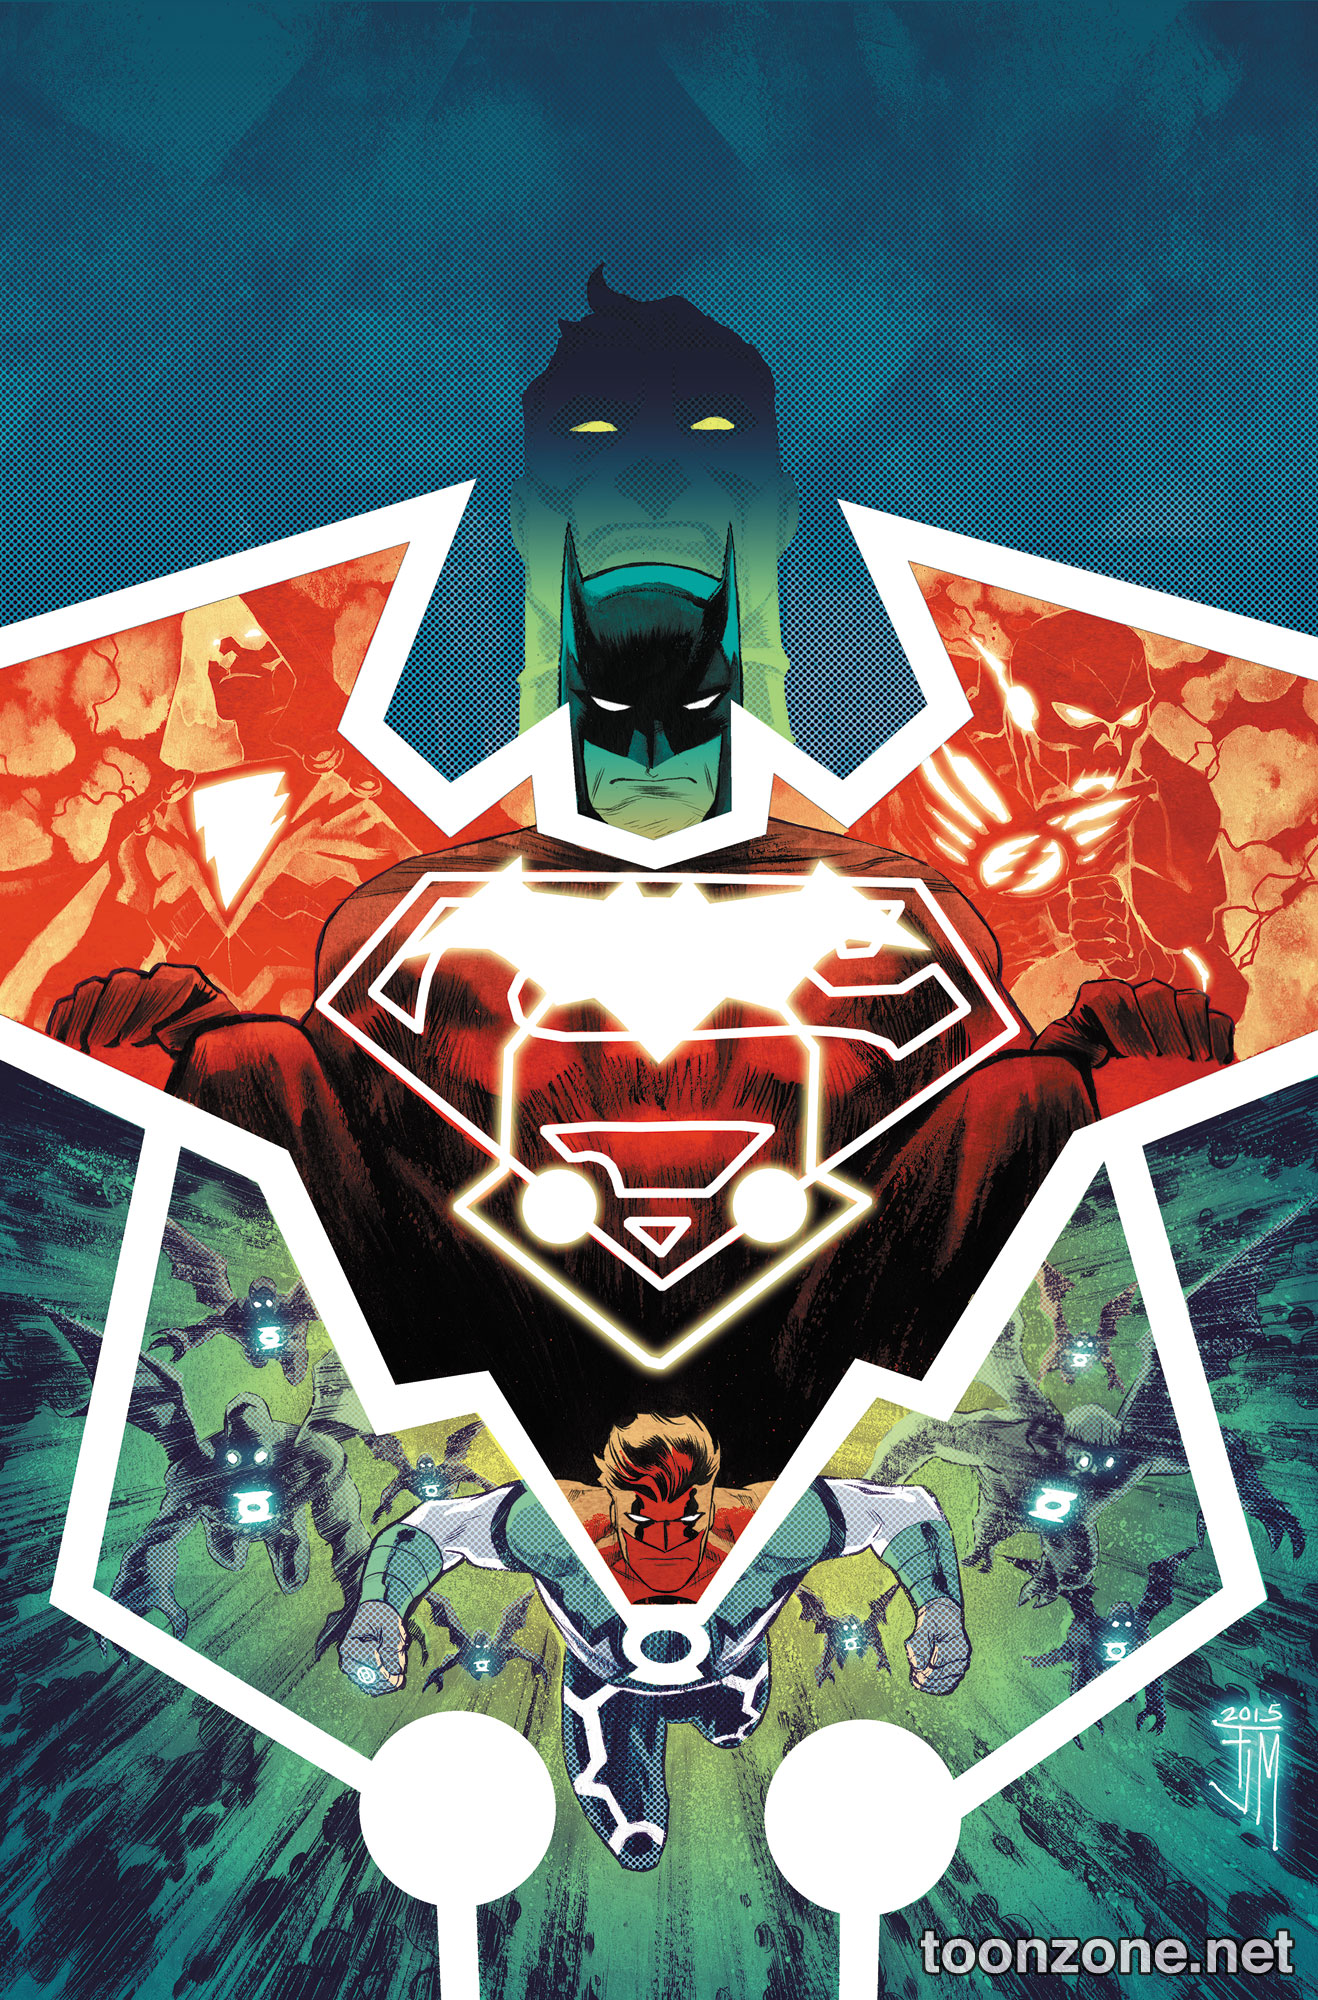 JUSTICE LEAGUE: DARKSEID WAR – POWER OF THE GODS HC